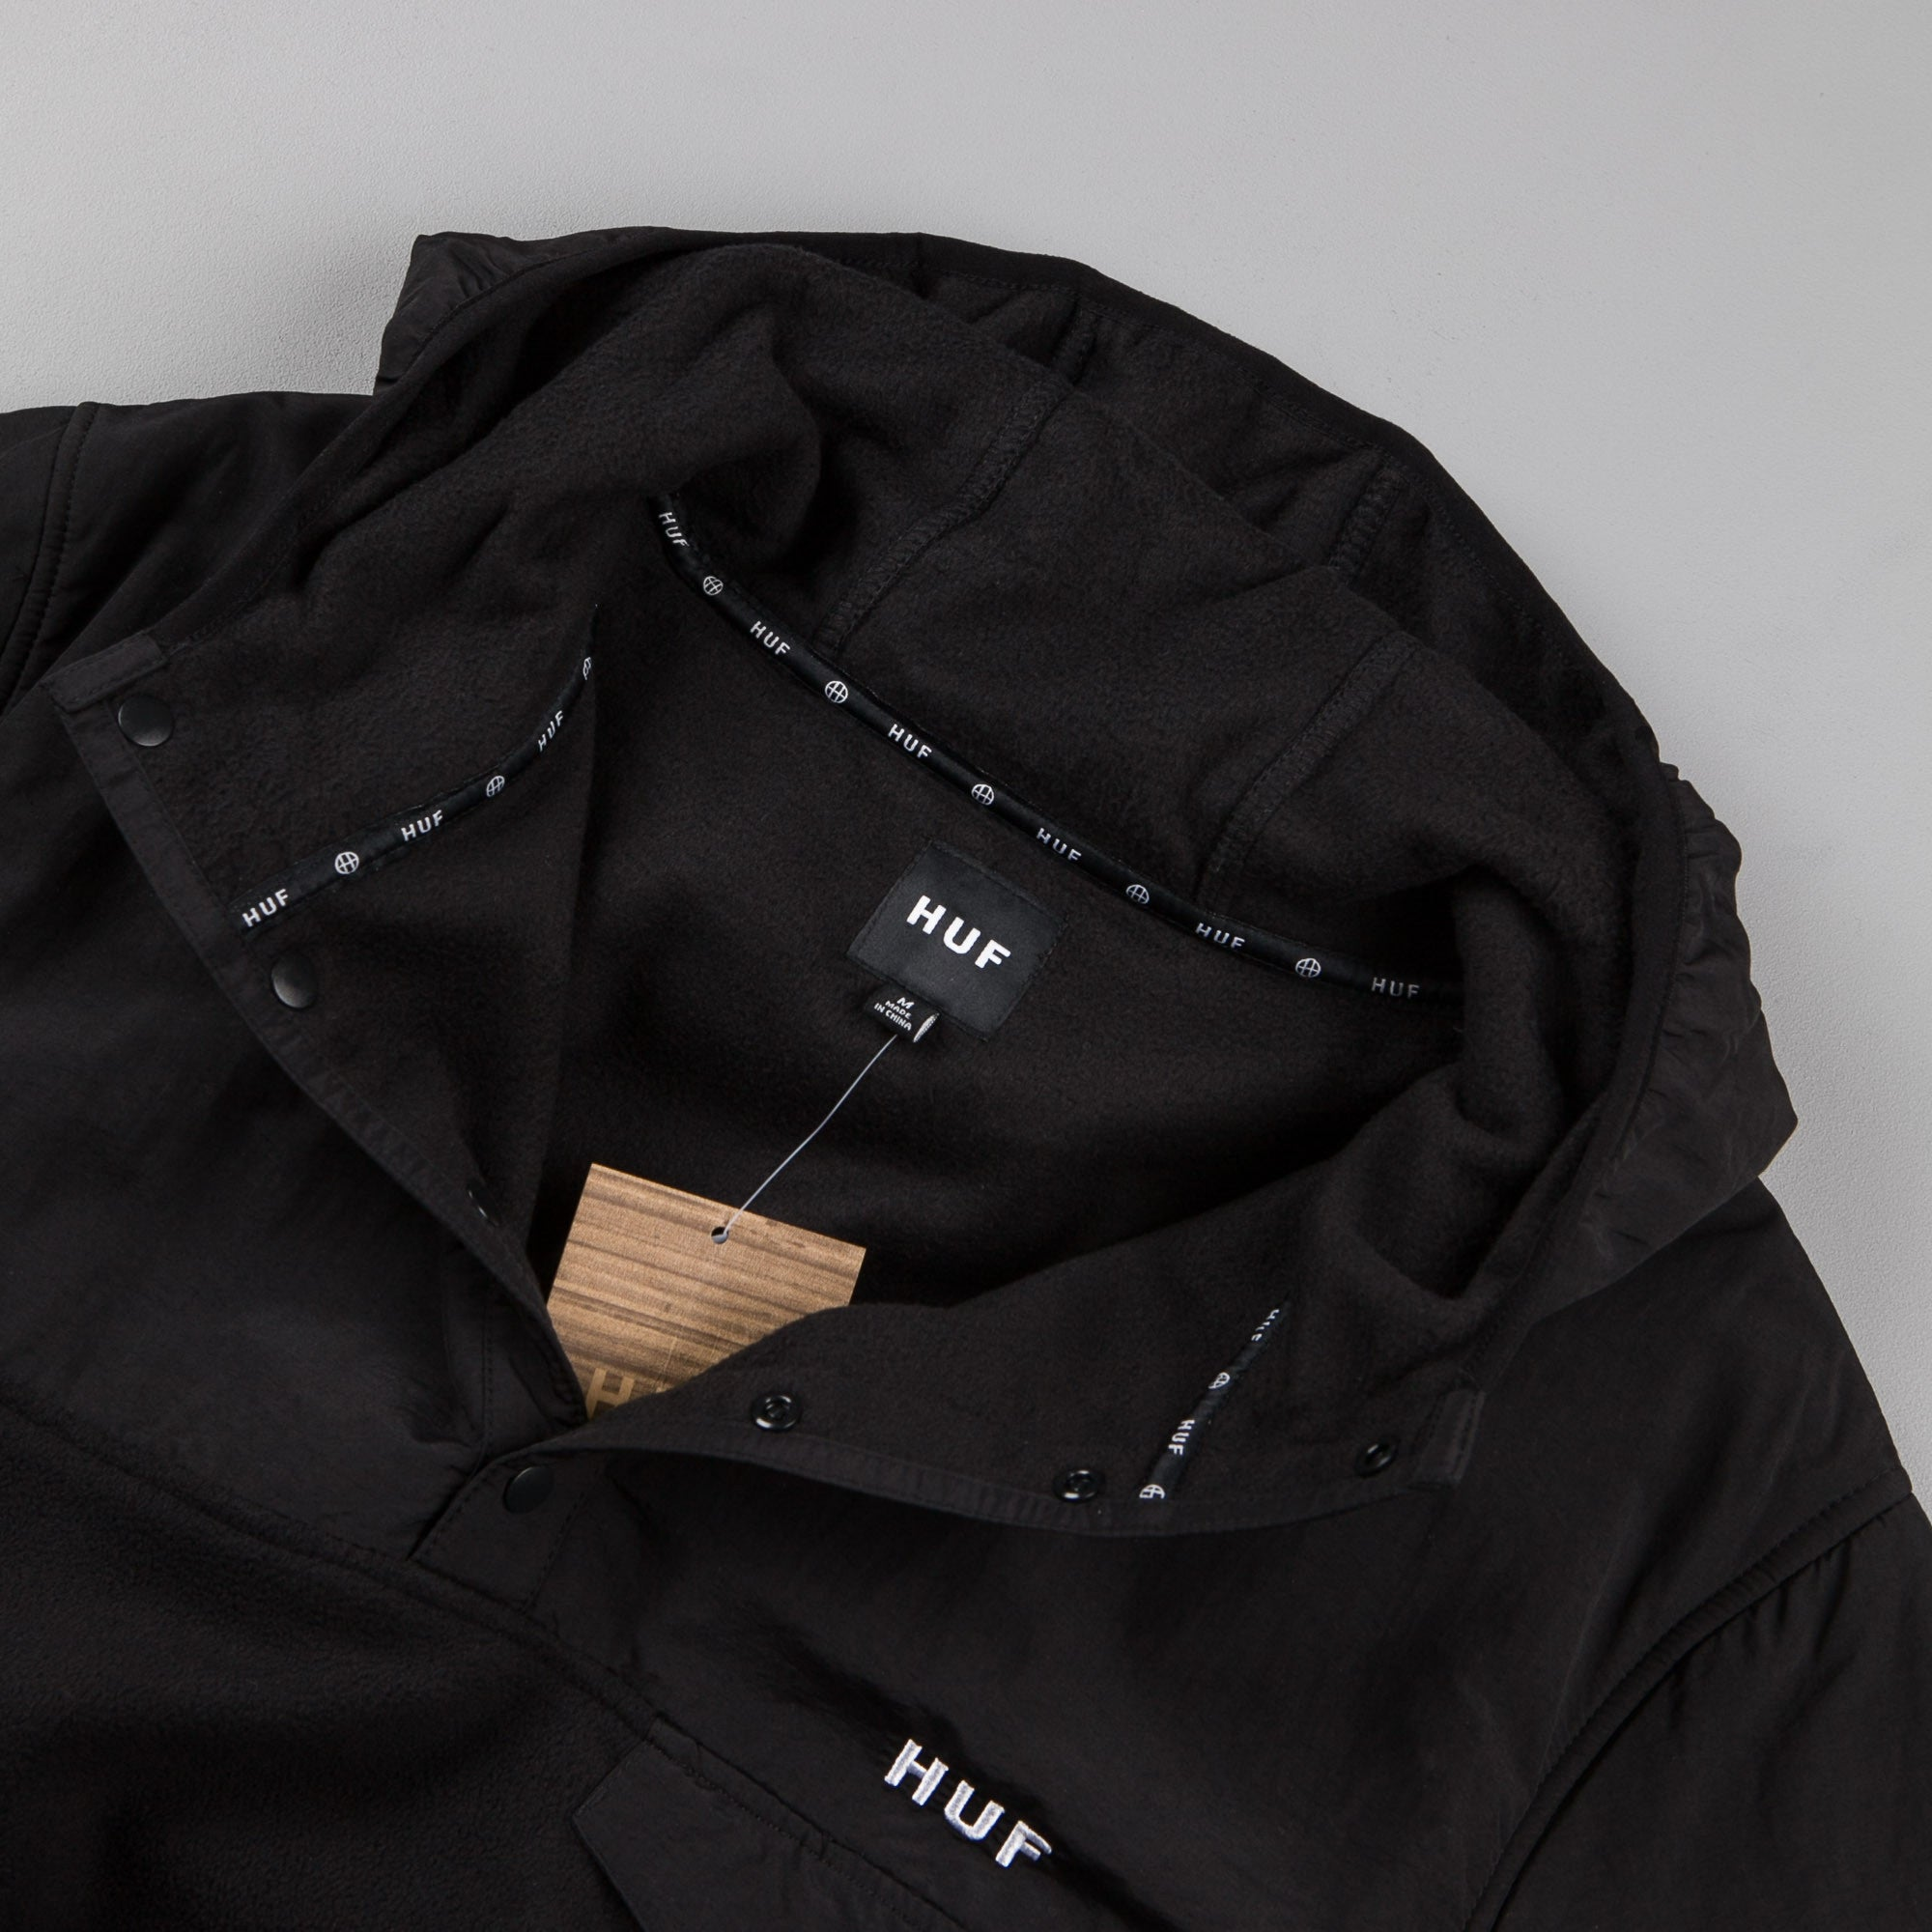 HUF Tofino Polar Hooded Sweatshirt - Black